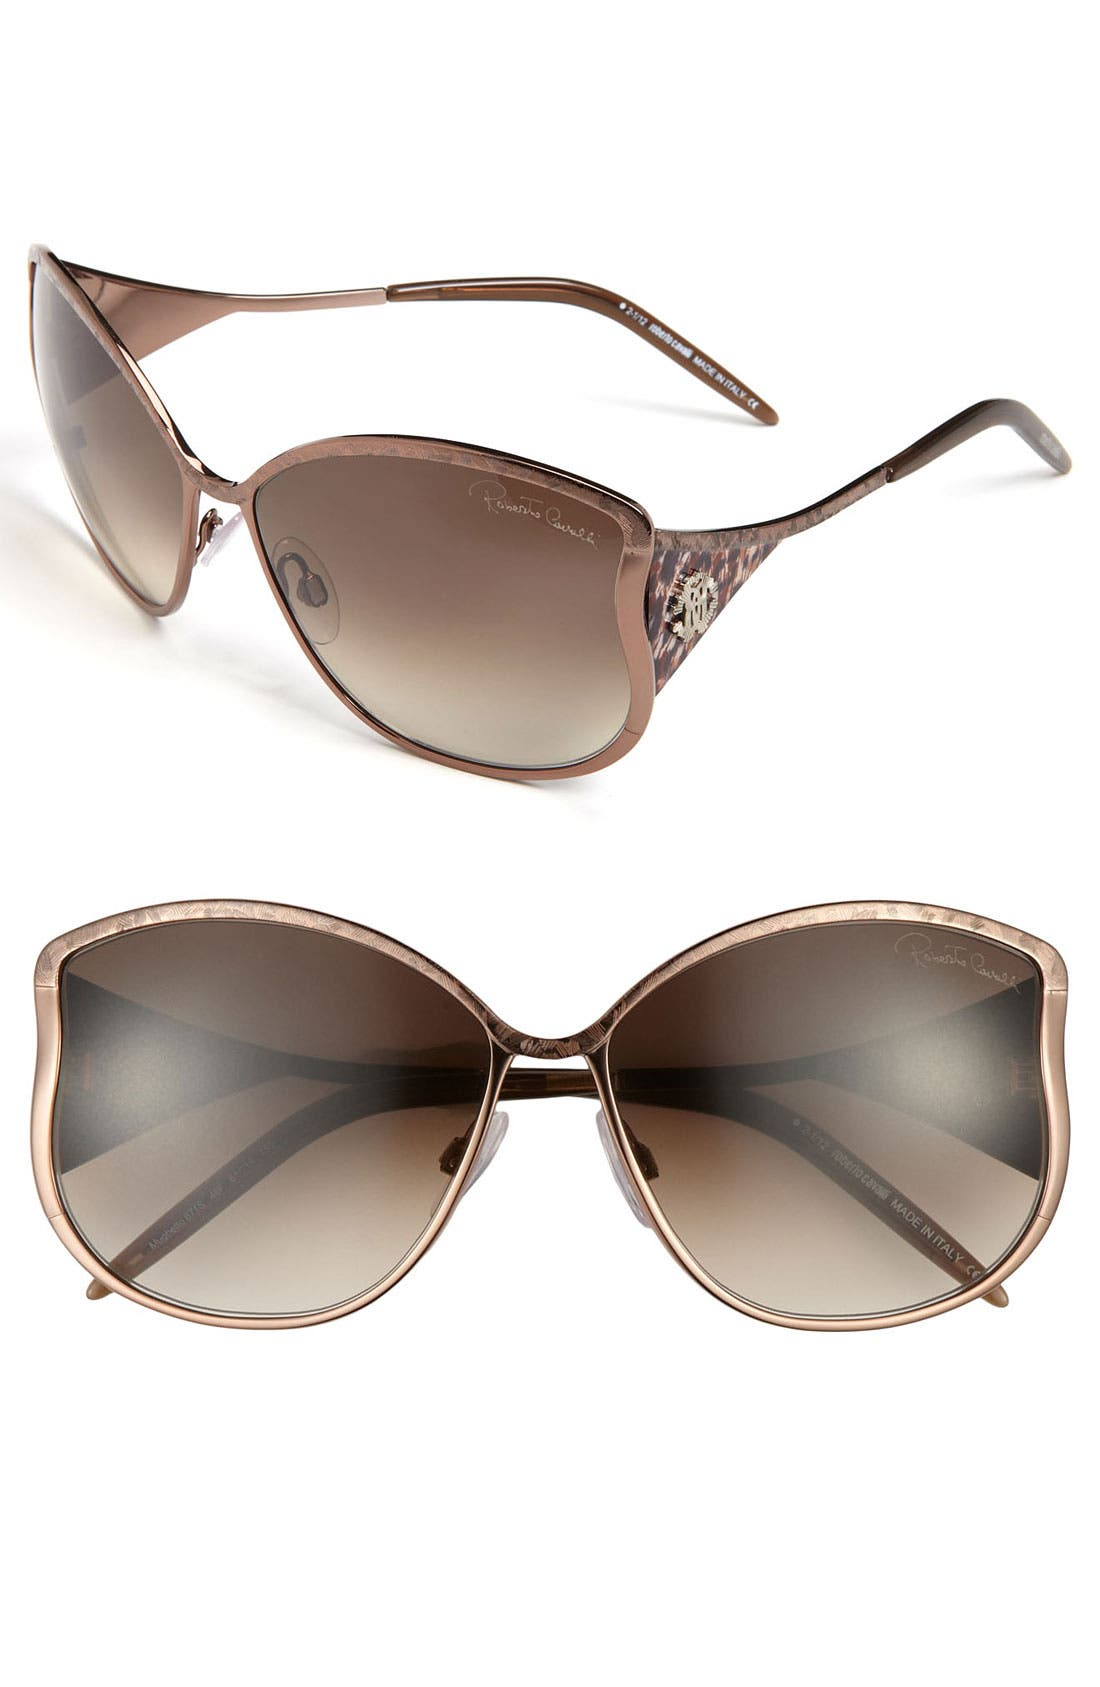 Alternate Image 1 Selected - Roberto Cavalli 61mm Oversized Sunglasses